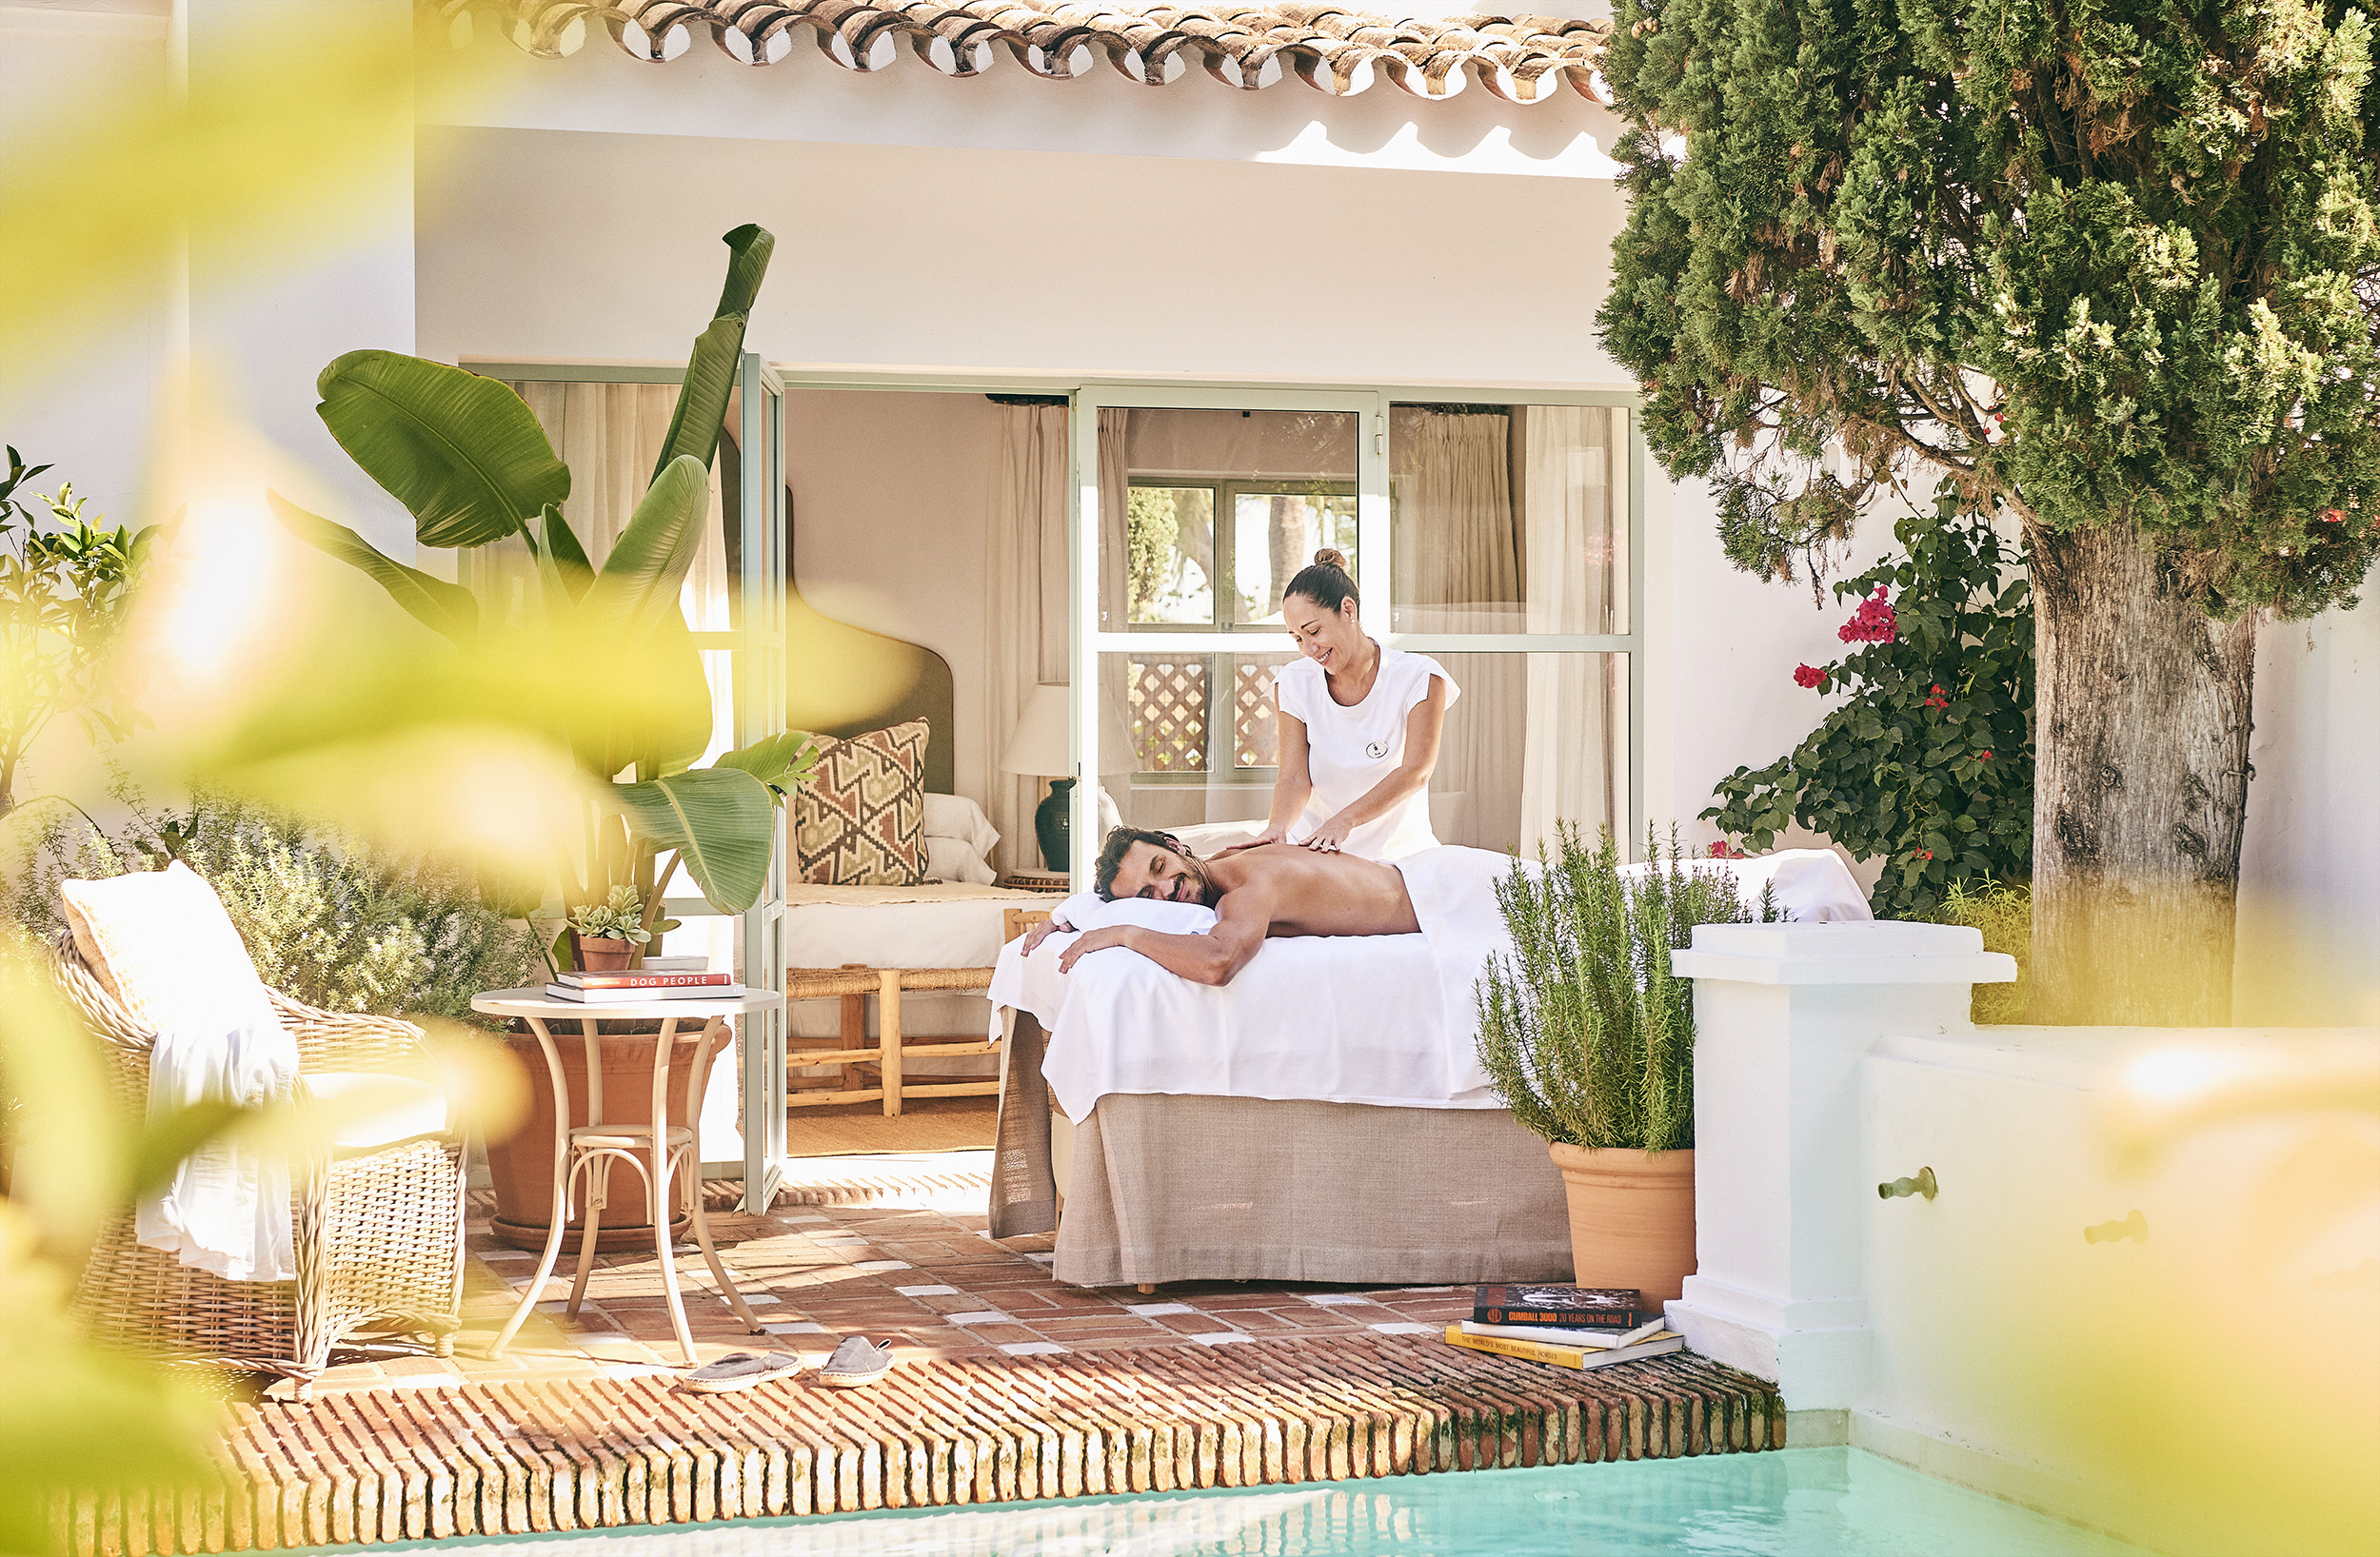 Massage by the pool at Marbella Club Hotel